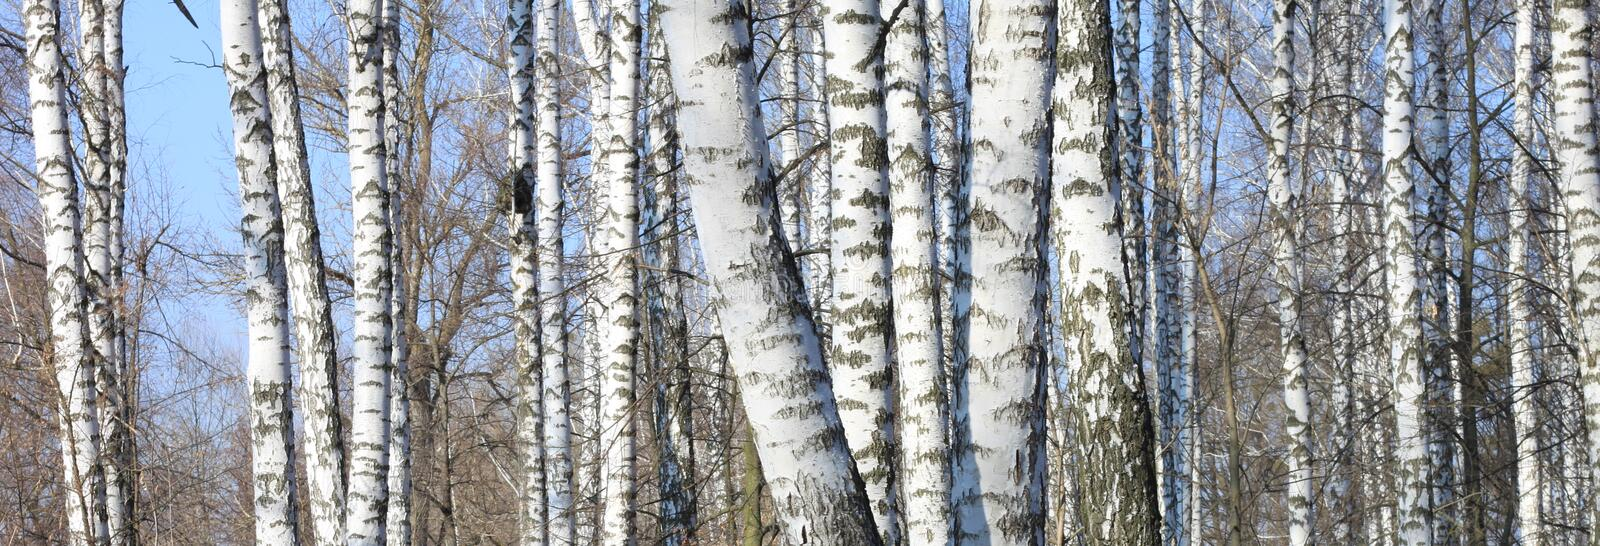 Birch trees in forest. Trunks of birch trees in forest royalty free stock photography